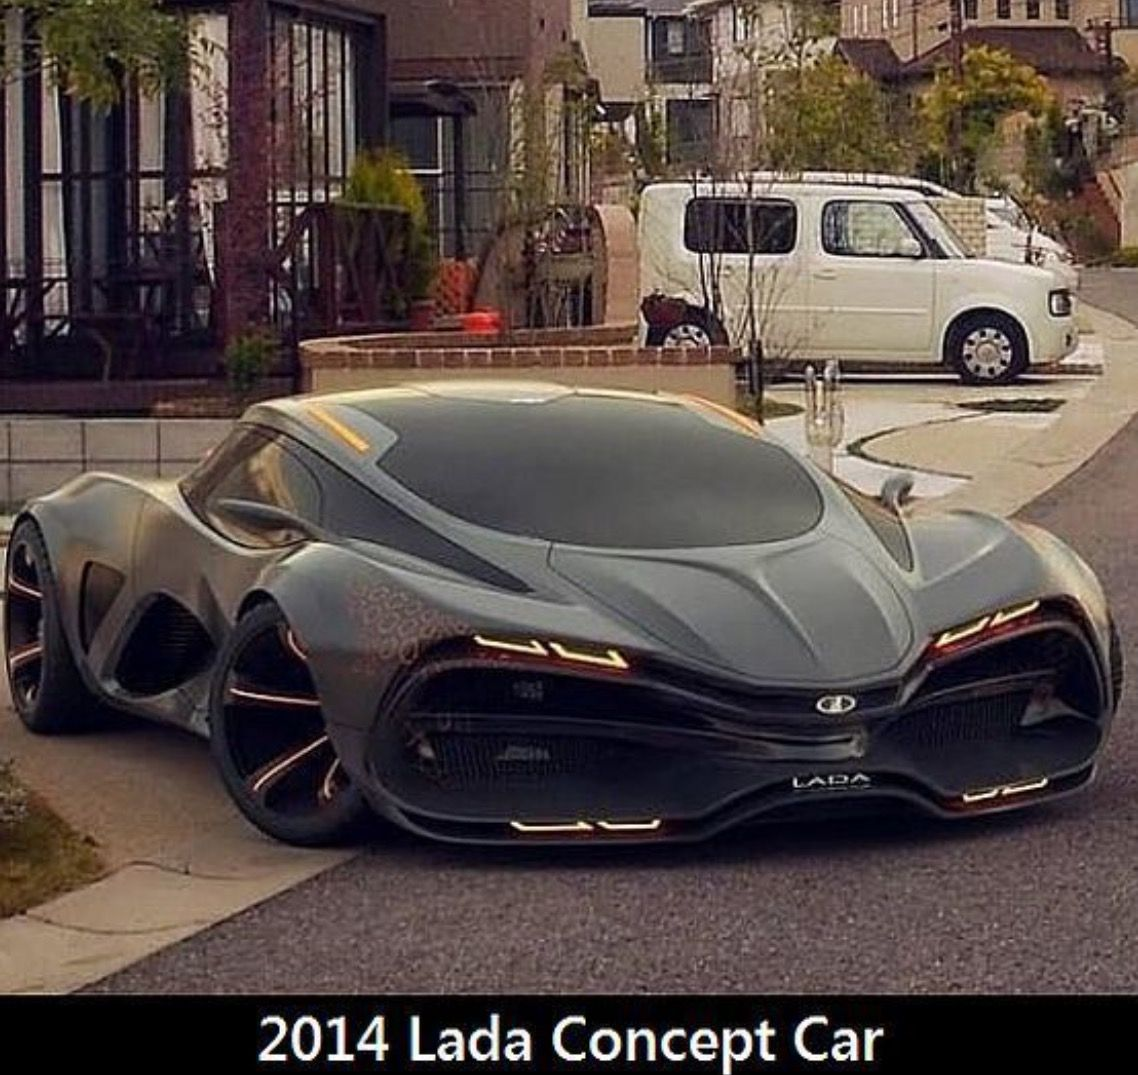 2014 lada concept car planet mitsubishi 265 n franklin st, hempstead